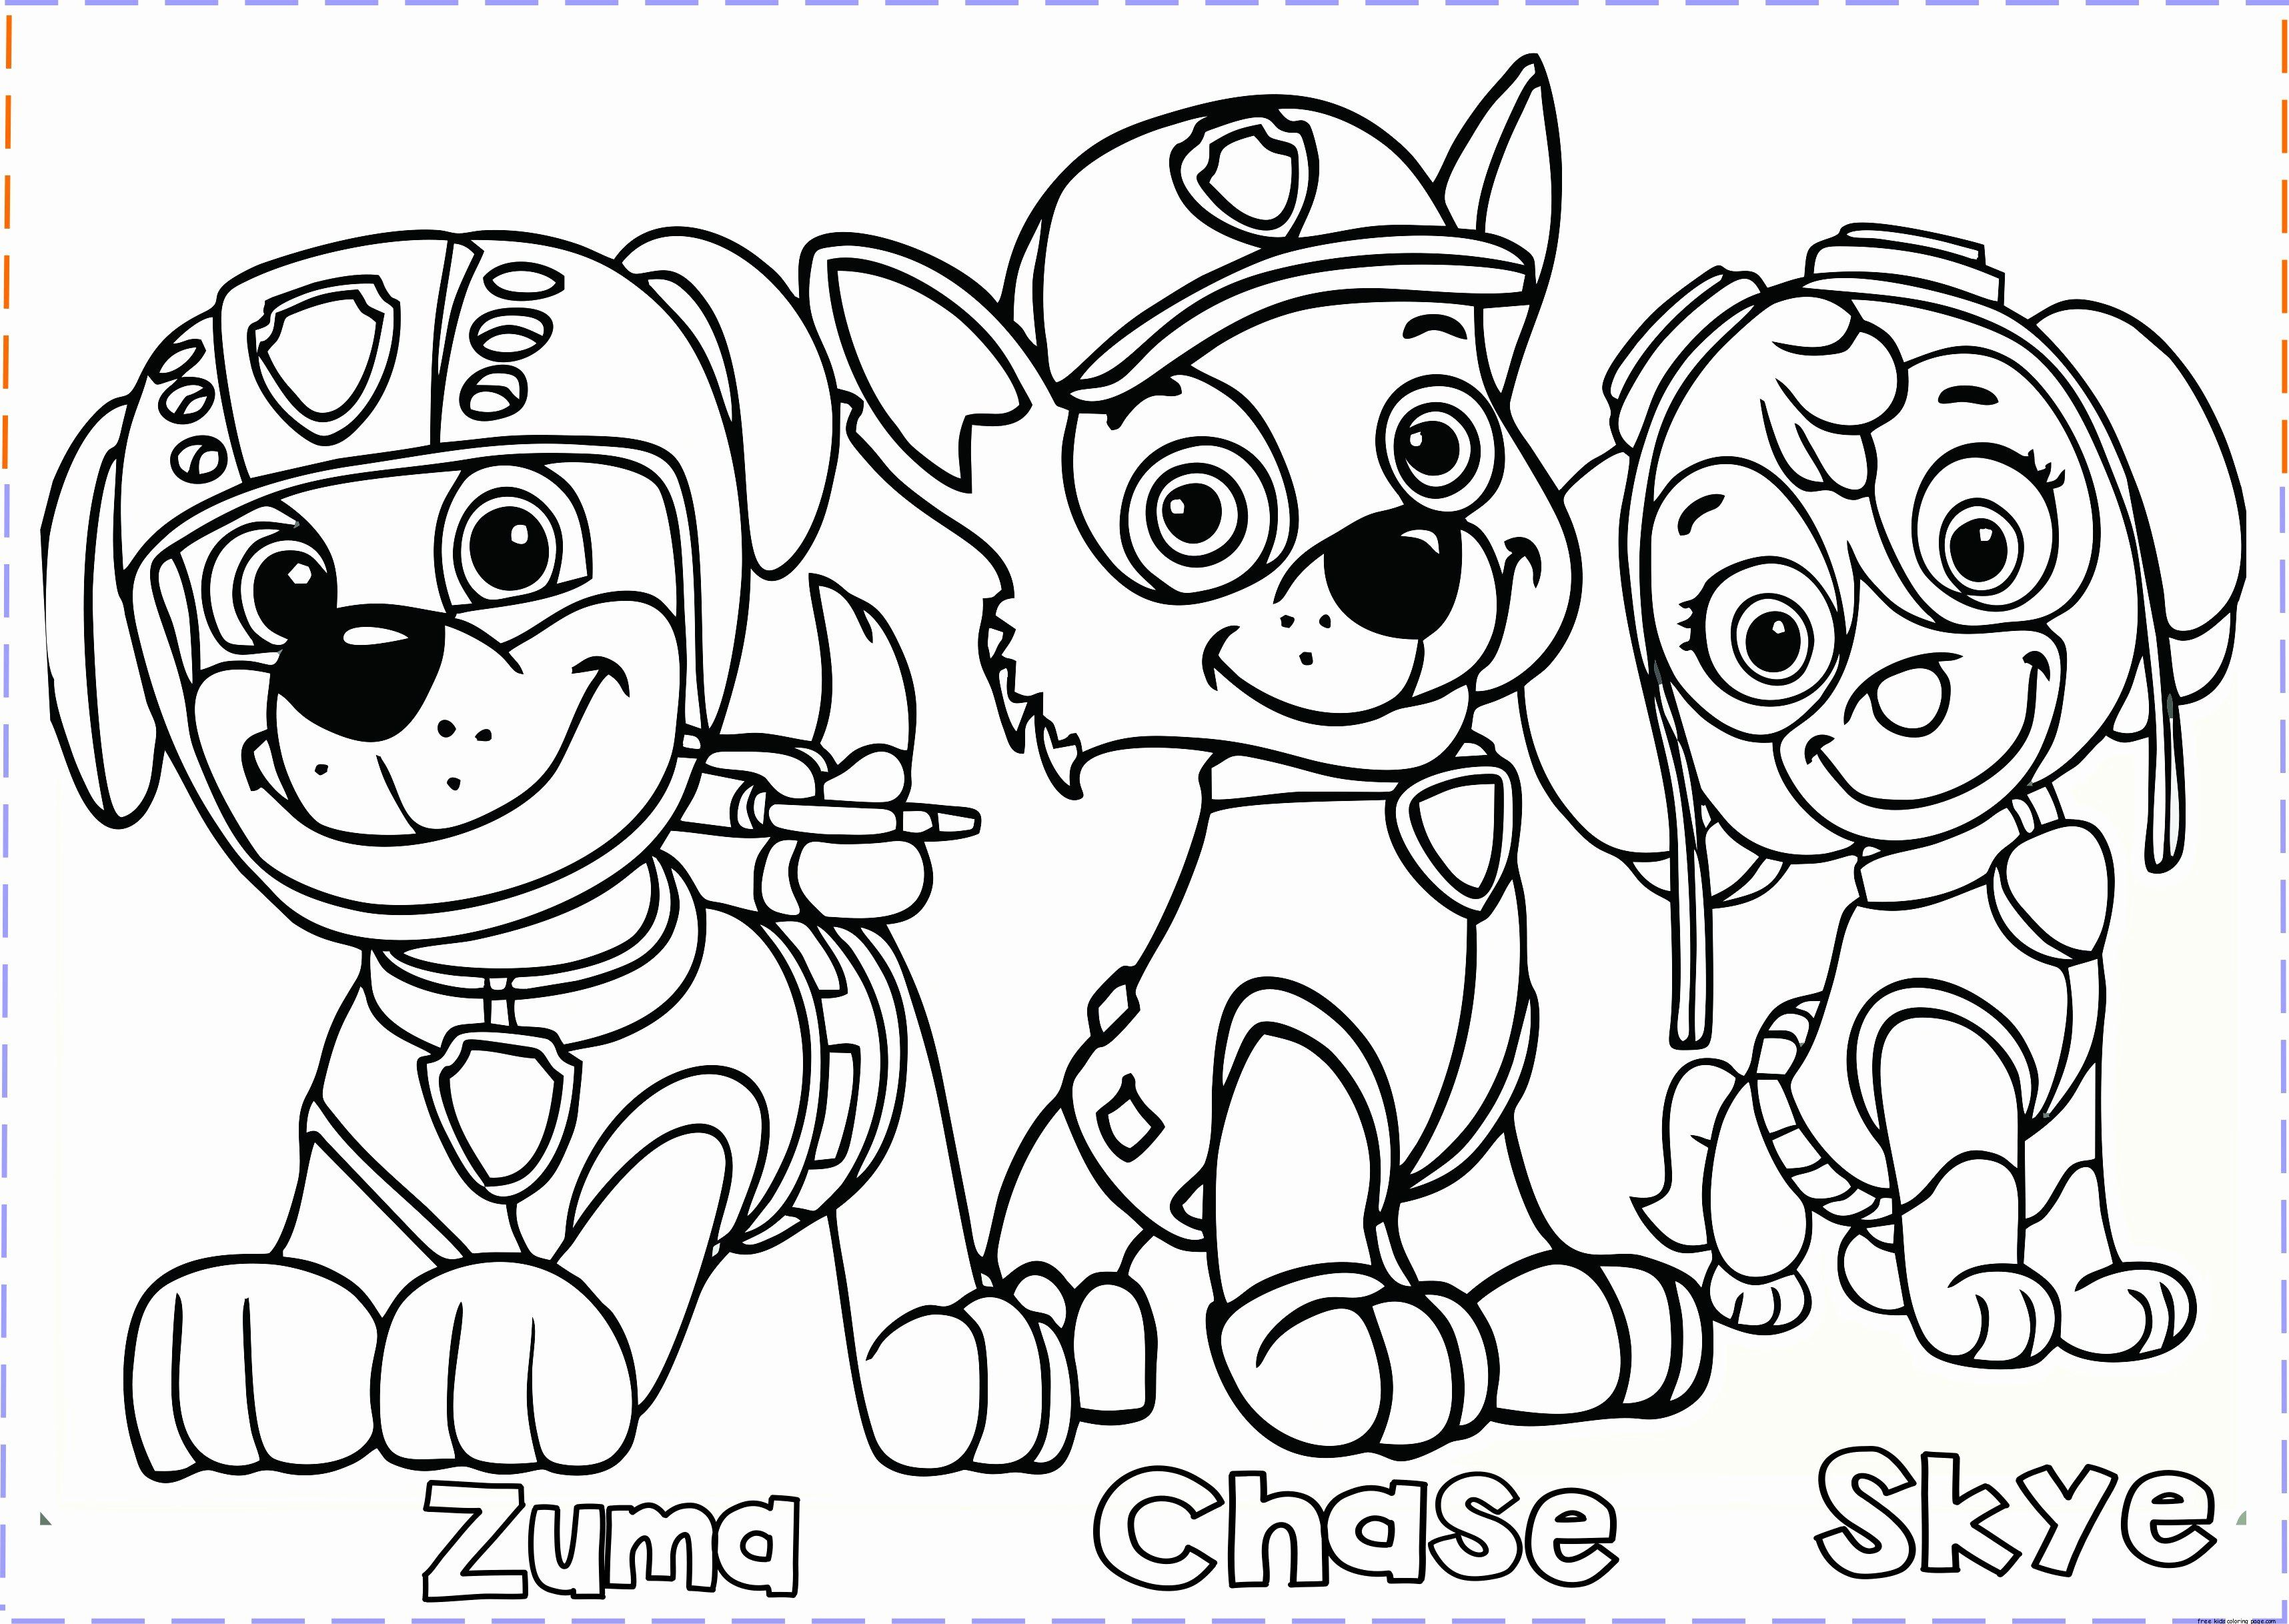 Coloring Page Paw Patrol Unique Paw Patrol Coloring Pages Free Printable Coloring Pages Paw Patrol Coloring Cartoon Coloring Pages Birthday Coloring Pages